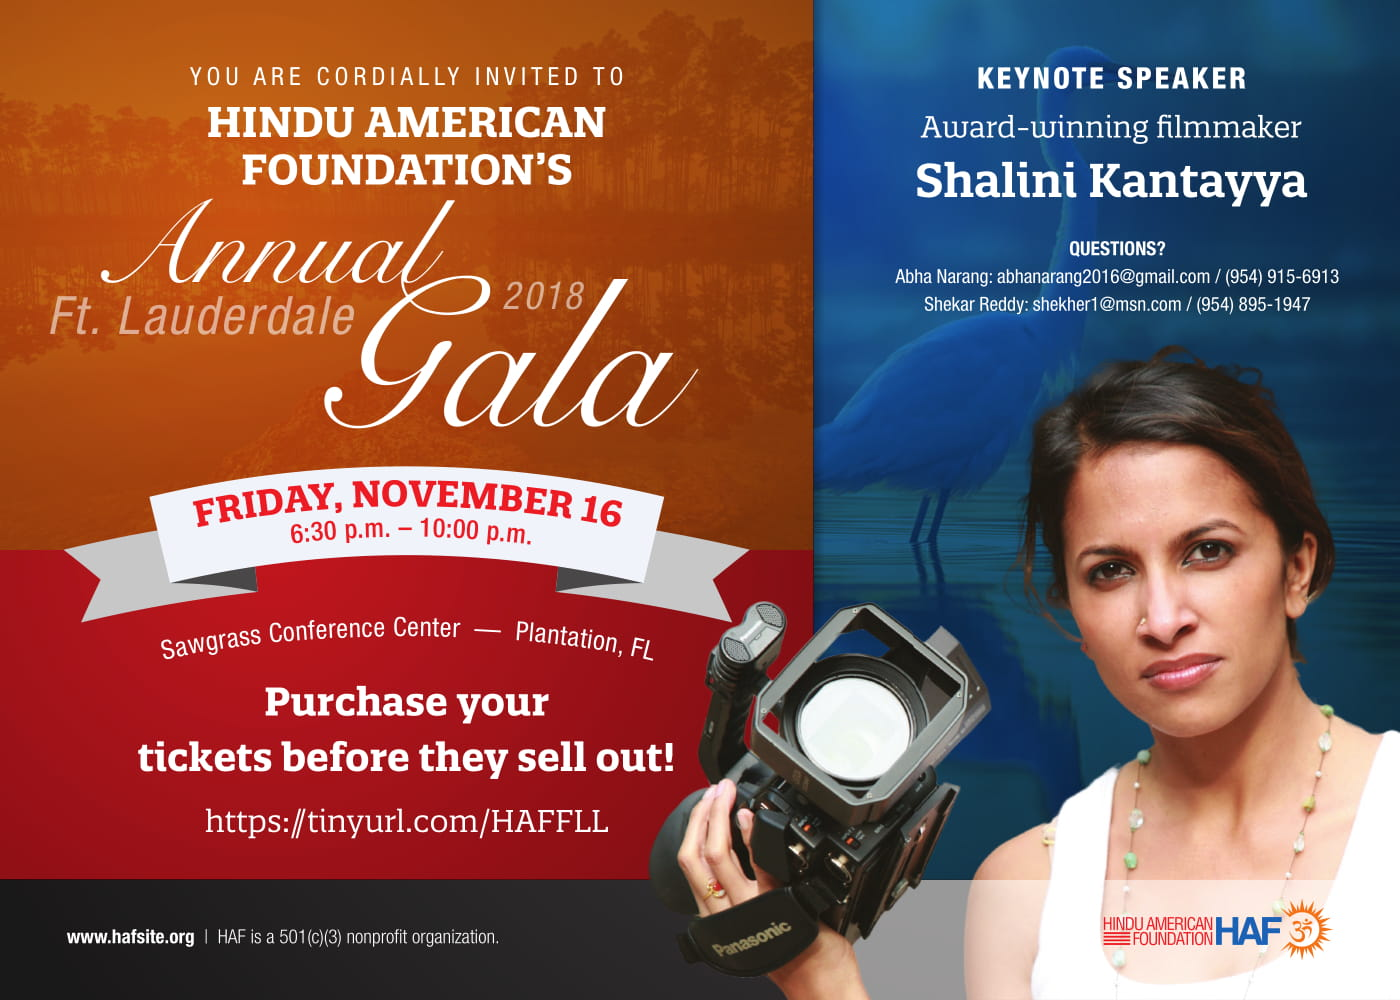 Hindu American Foundation's Annual Ft. Lauderdale Gala